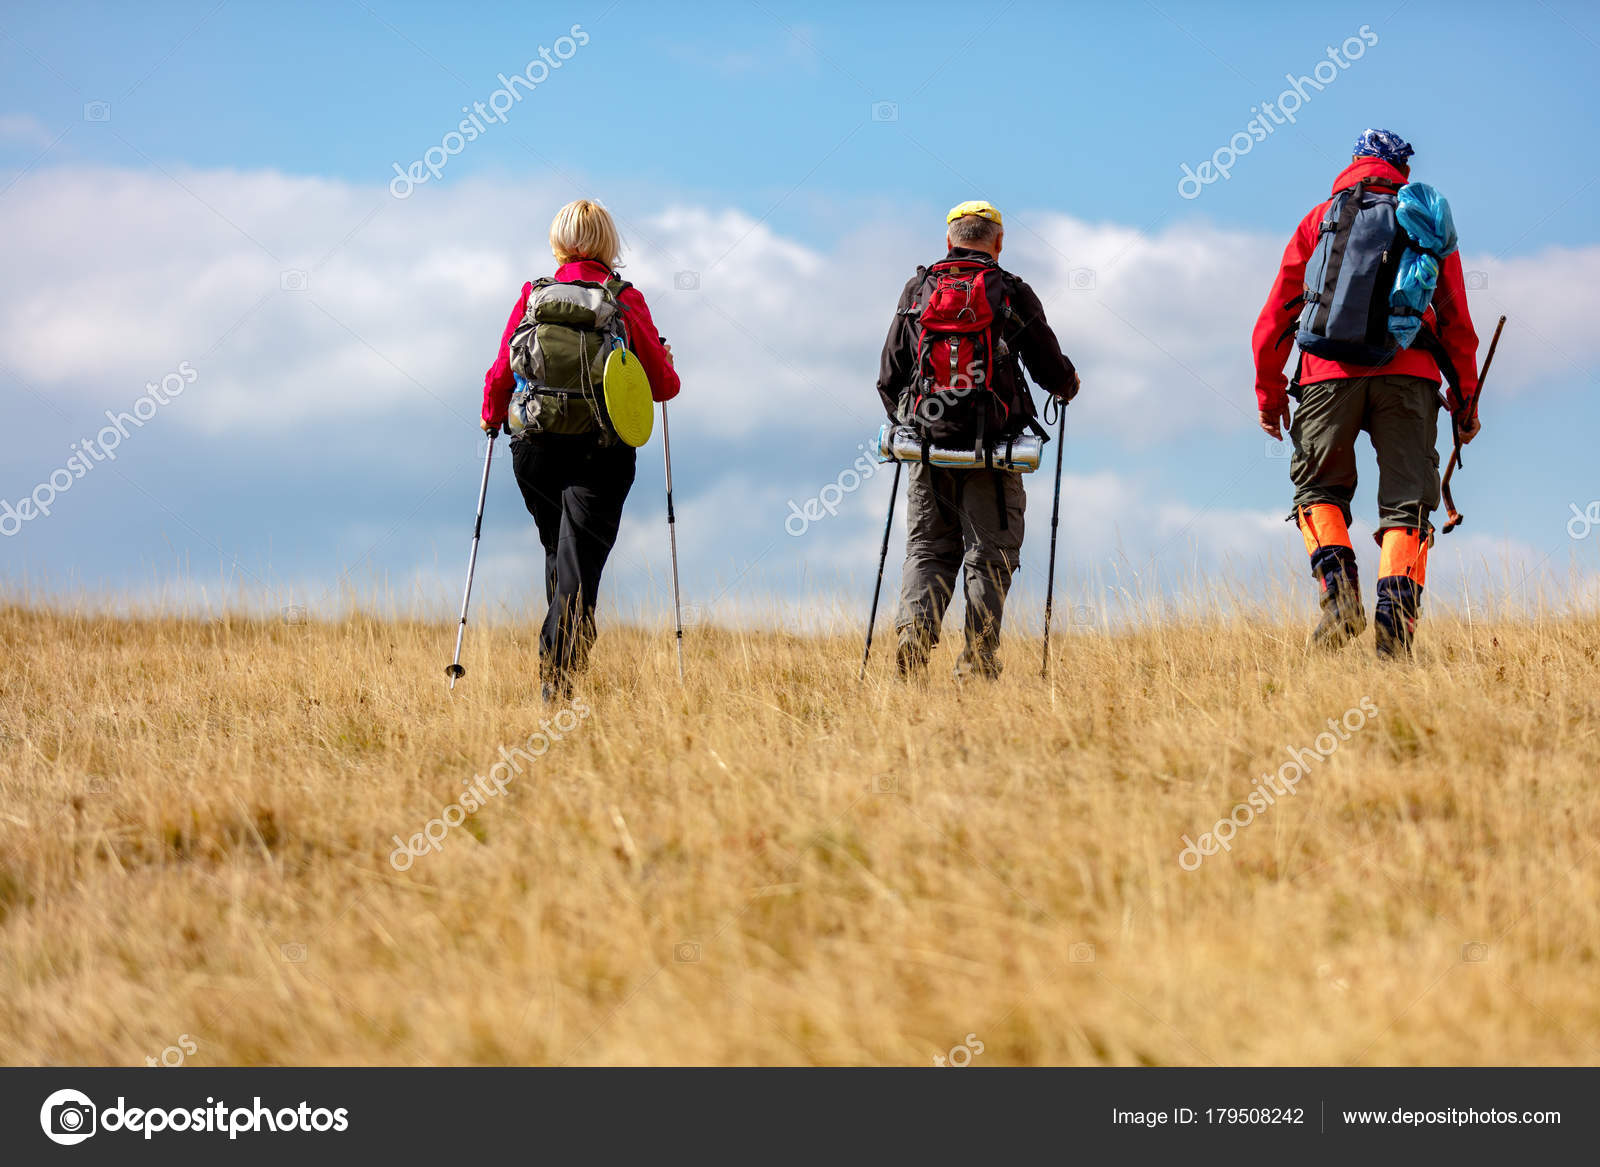 a1272fa623 Rear view shot of young friends in countryside during summer holiday hiking.  Group of hikers